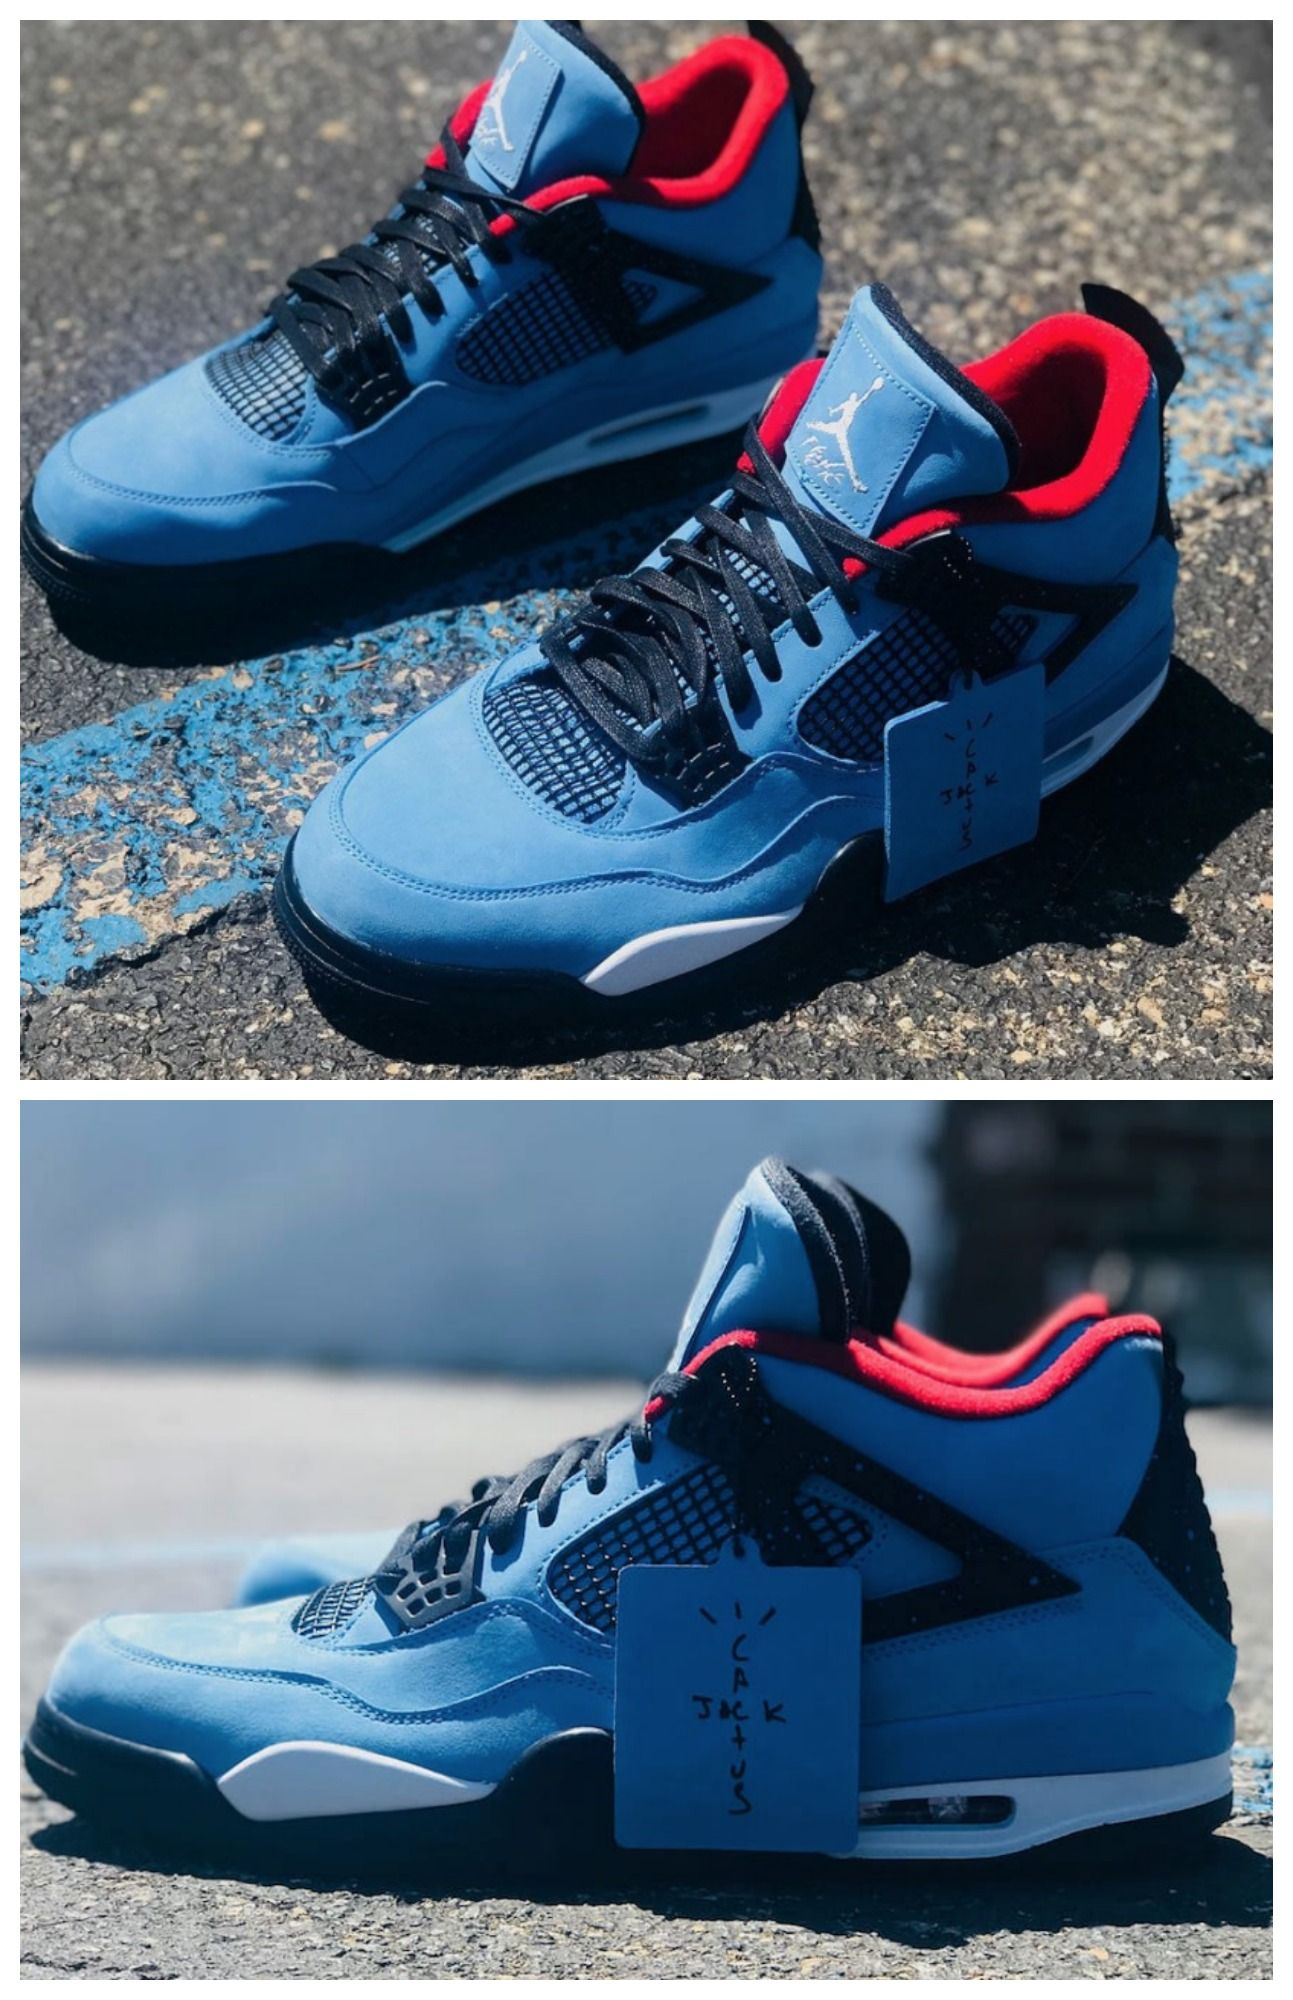 Travis Scott X Air Jordan 4 Cactus Jack Click To Buy Today